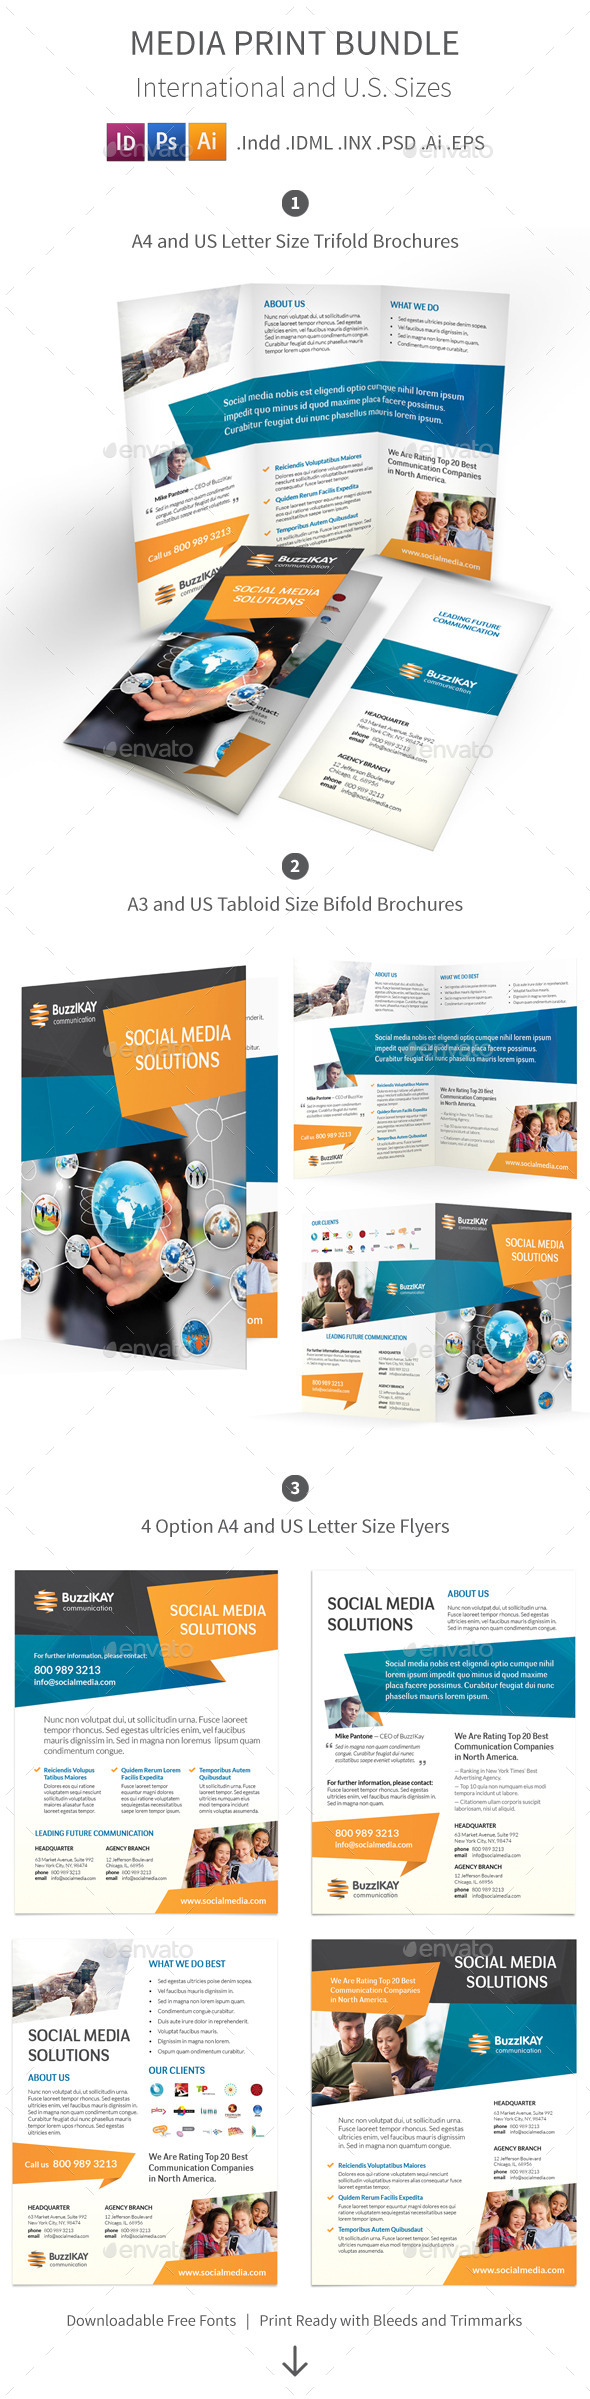 Media and Communication Print Bundle - Informational Brochures